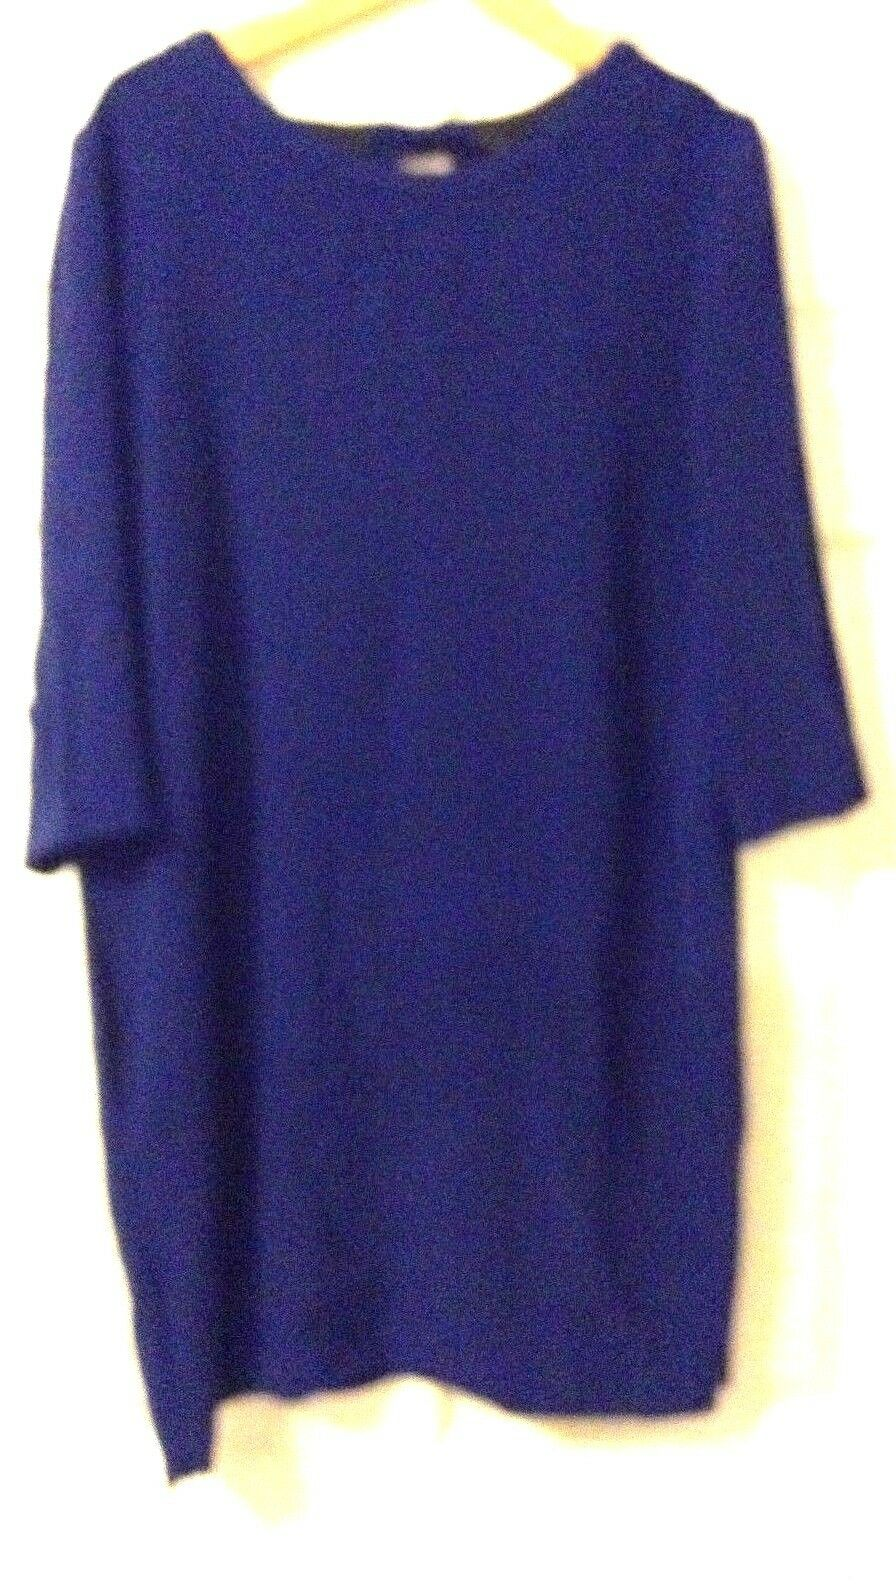 Sandro long top  dress Blau colour for damen-Größe M